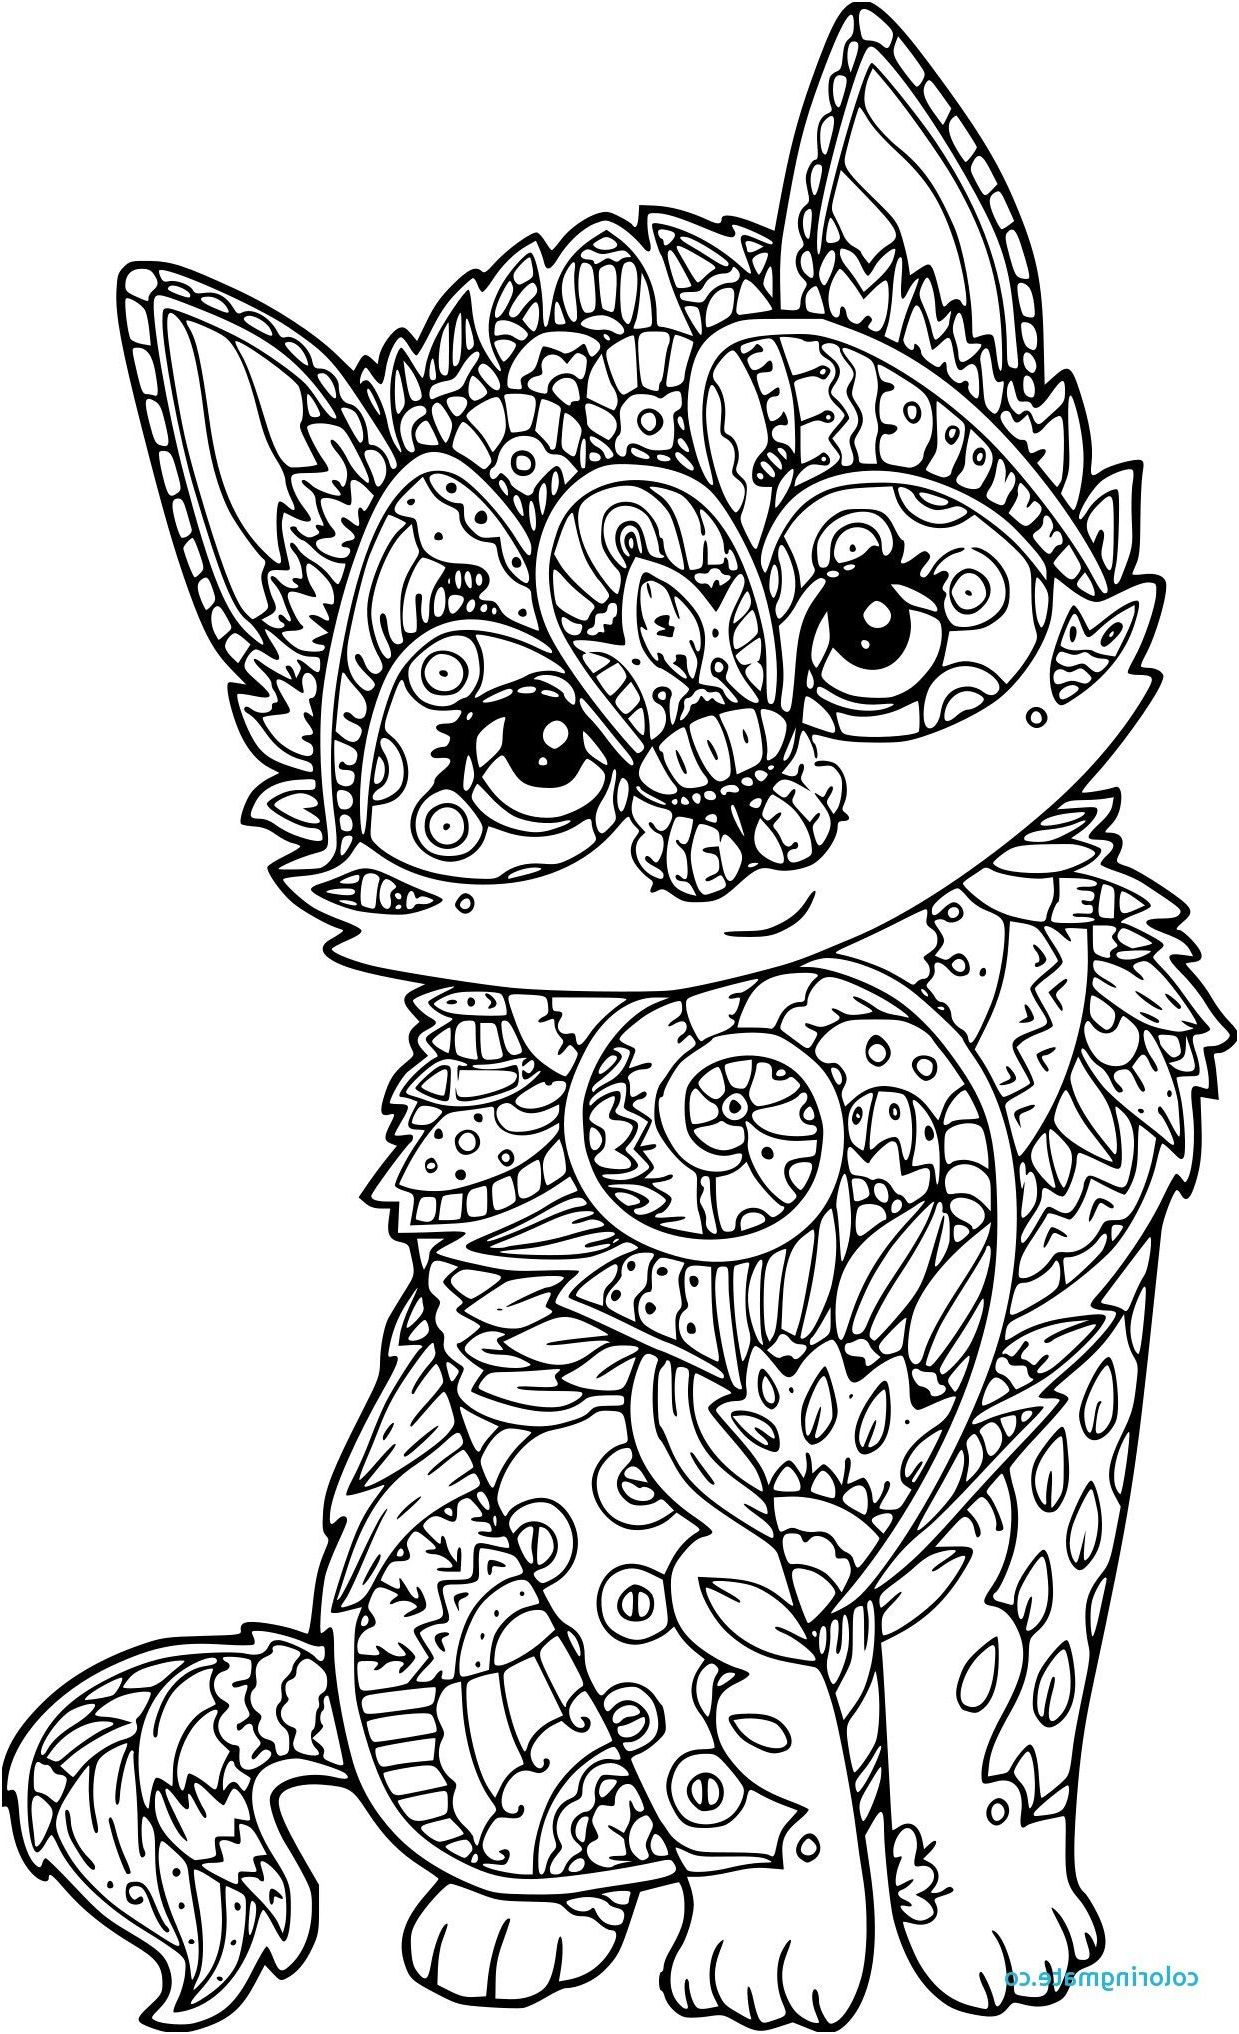 13 Authentique Coloriage A Imprimer Papillon Collection